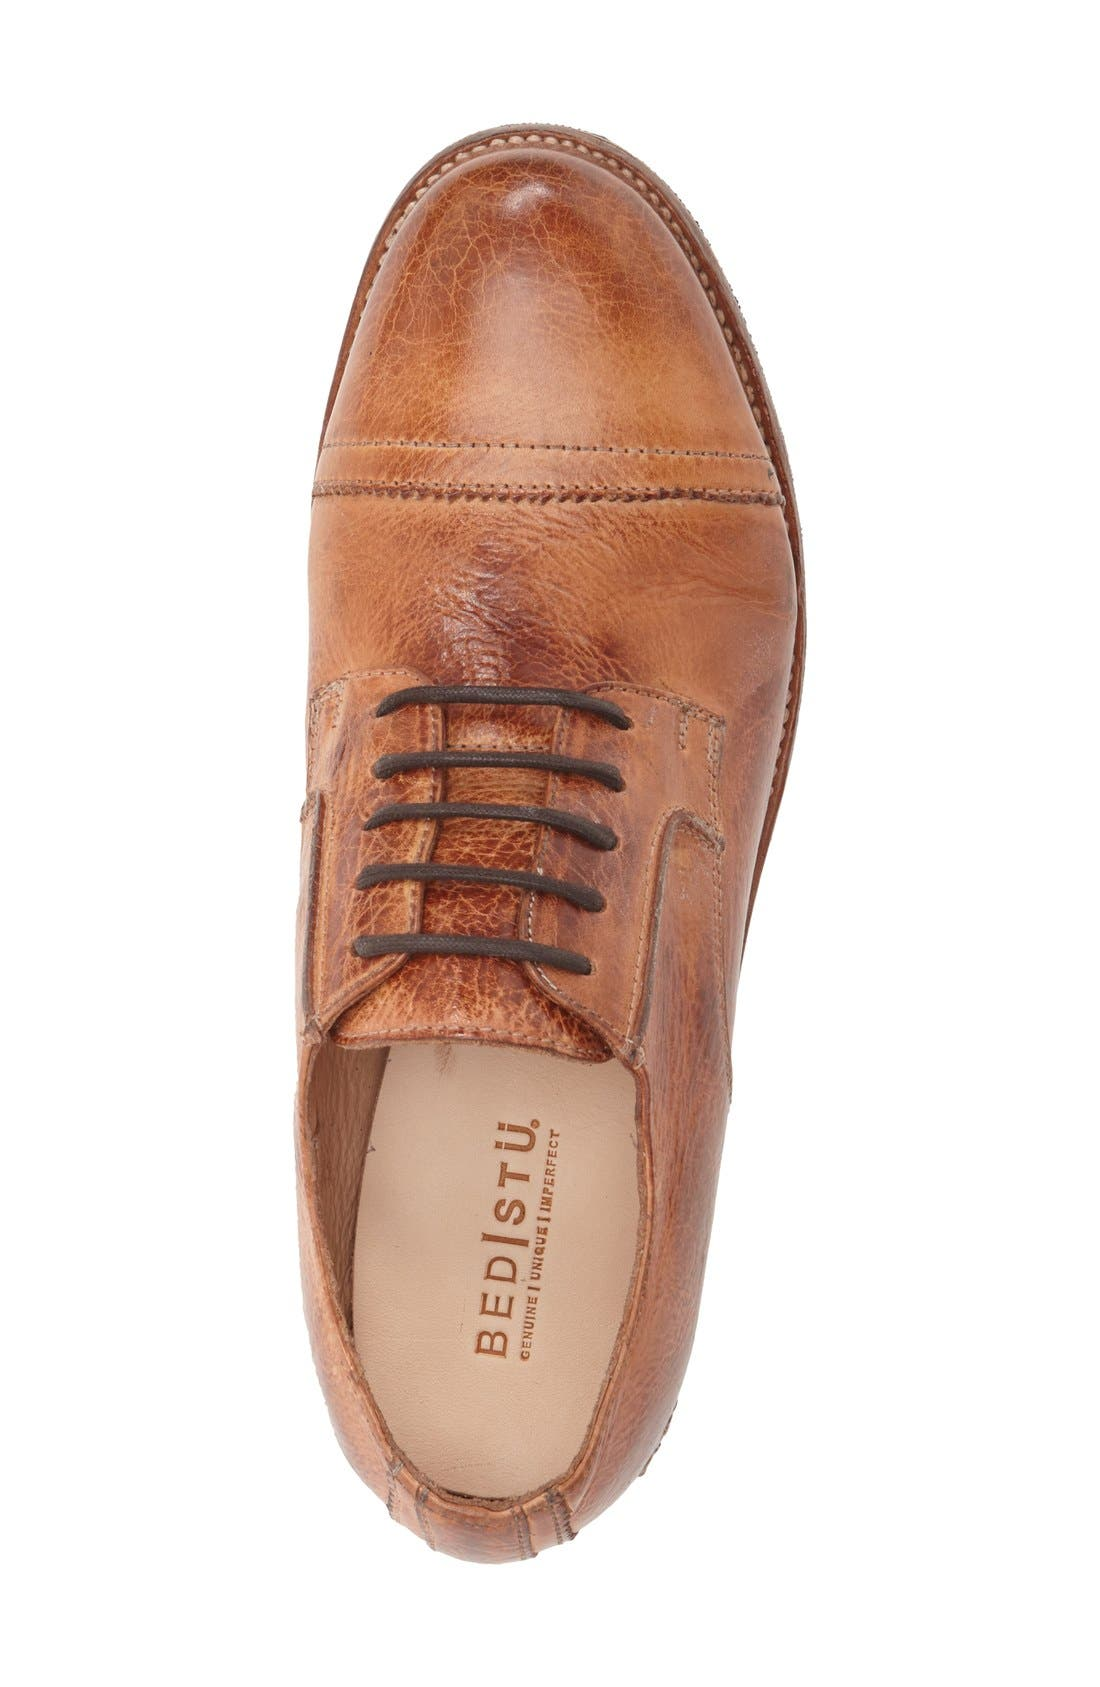 'Diorite' Cap Toe Derby,                             Alternate thumbnail 3, color,                             Cognac Leather